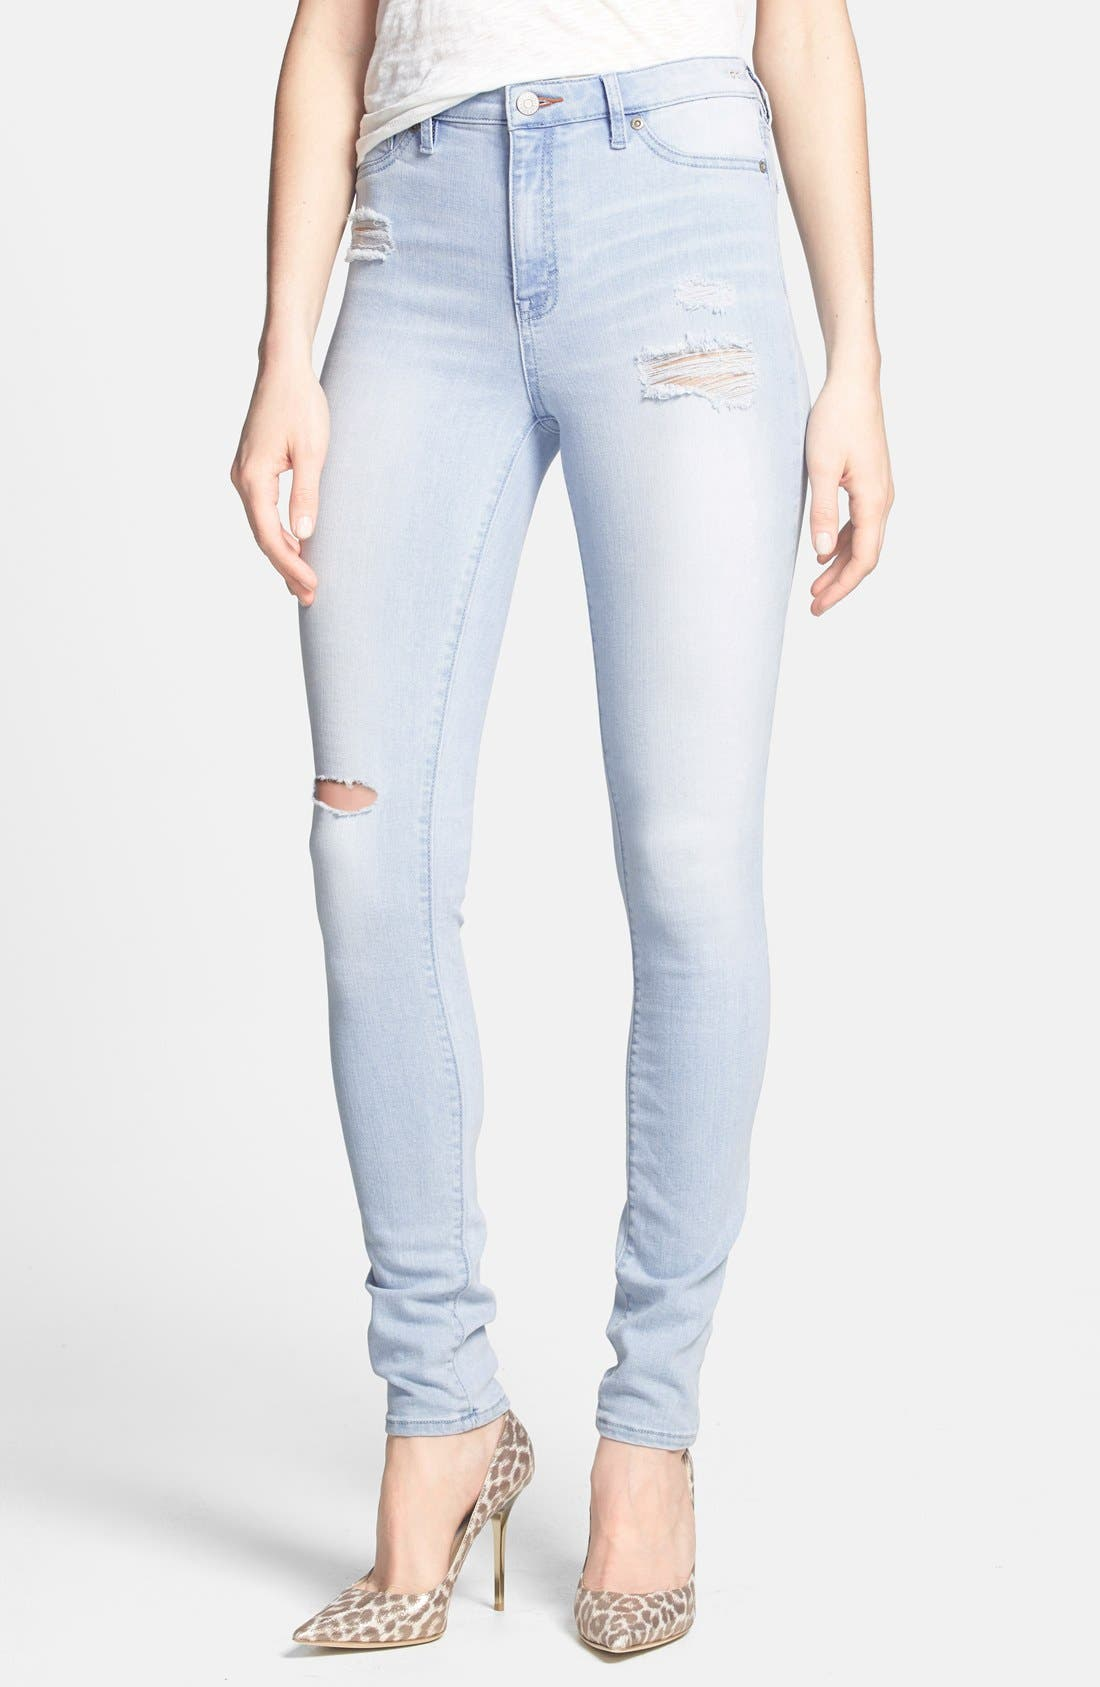 Alternate Image 1 Selected - Dittos 'Jessica' Destroyed Skinny Jeans (Enzyme Bleach Destructed)